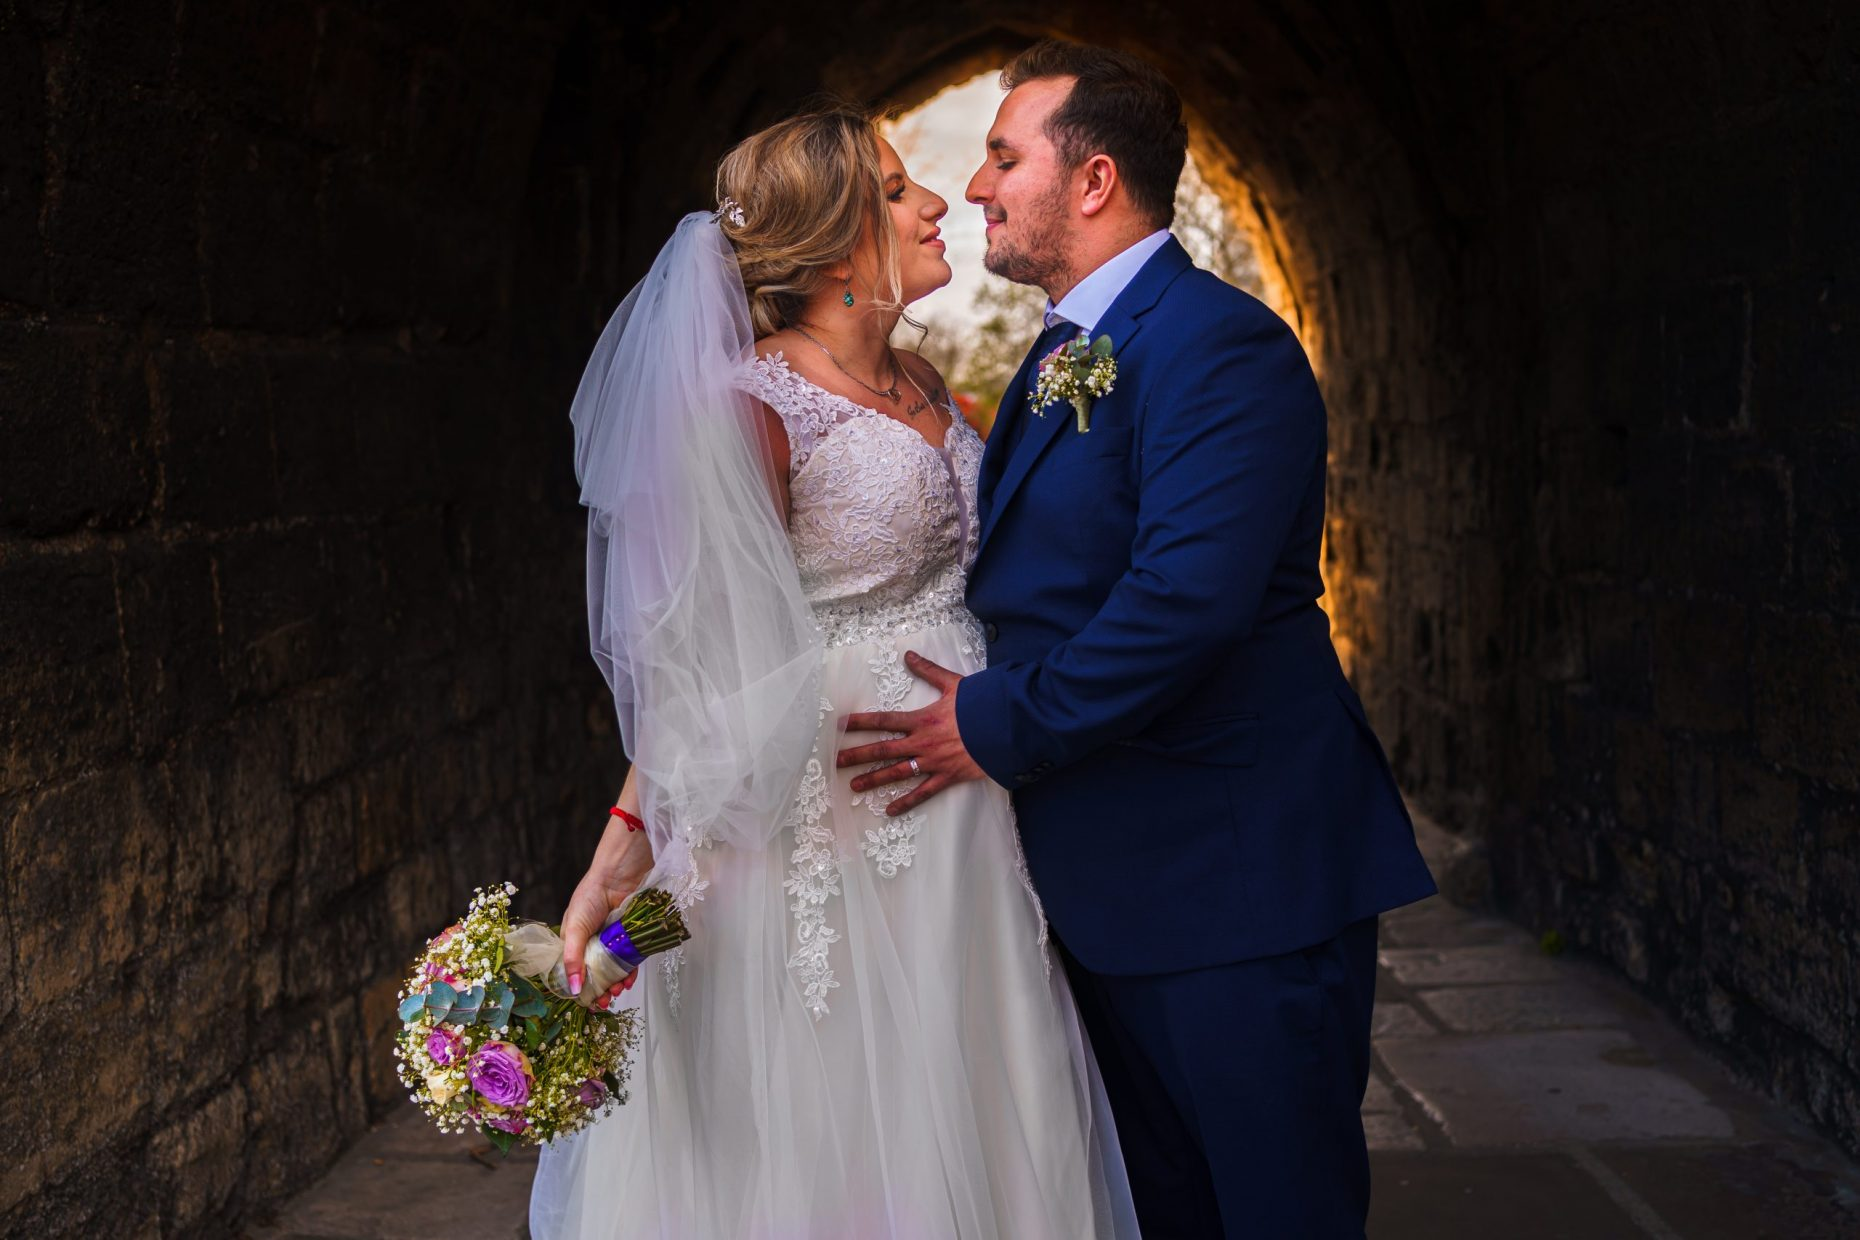 A bride & groom's couple portraits at Westgate Hall